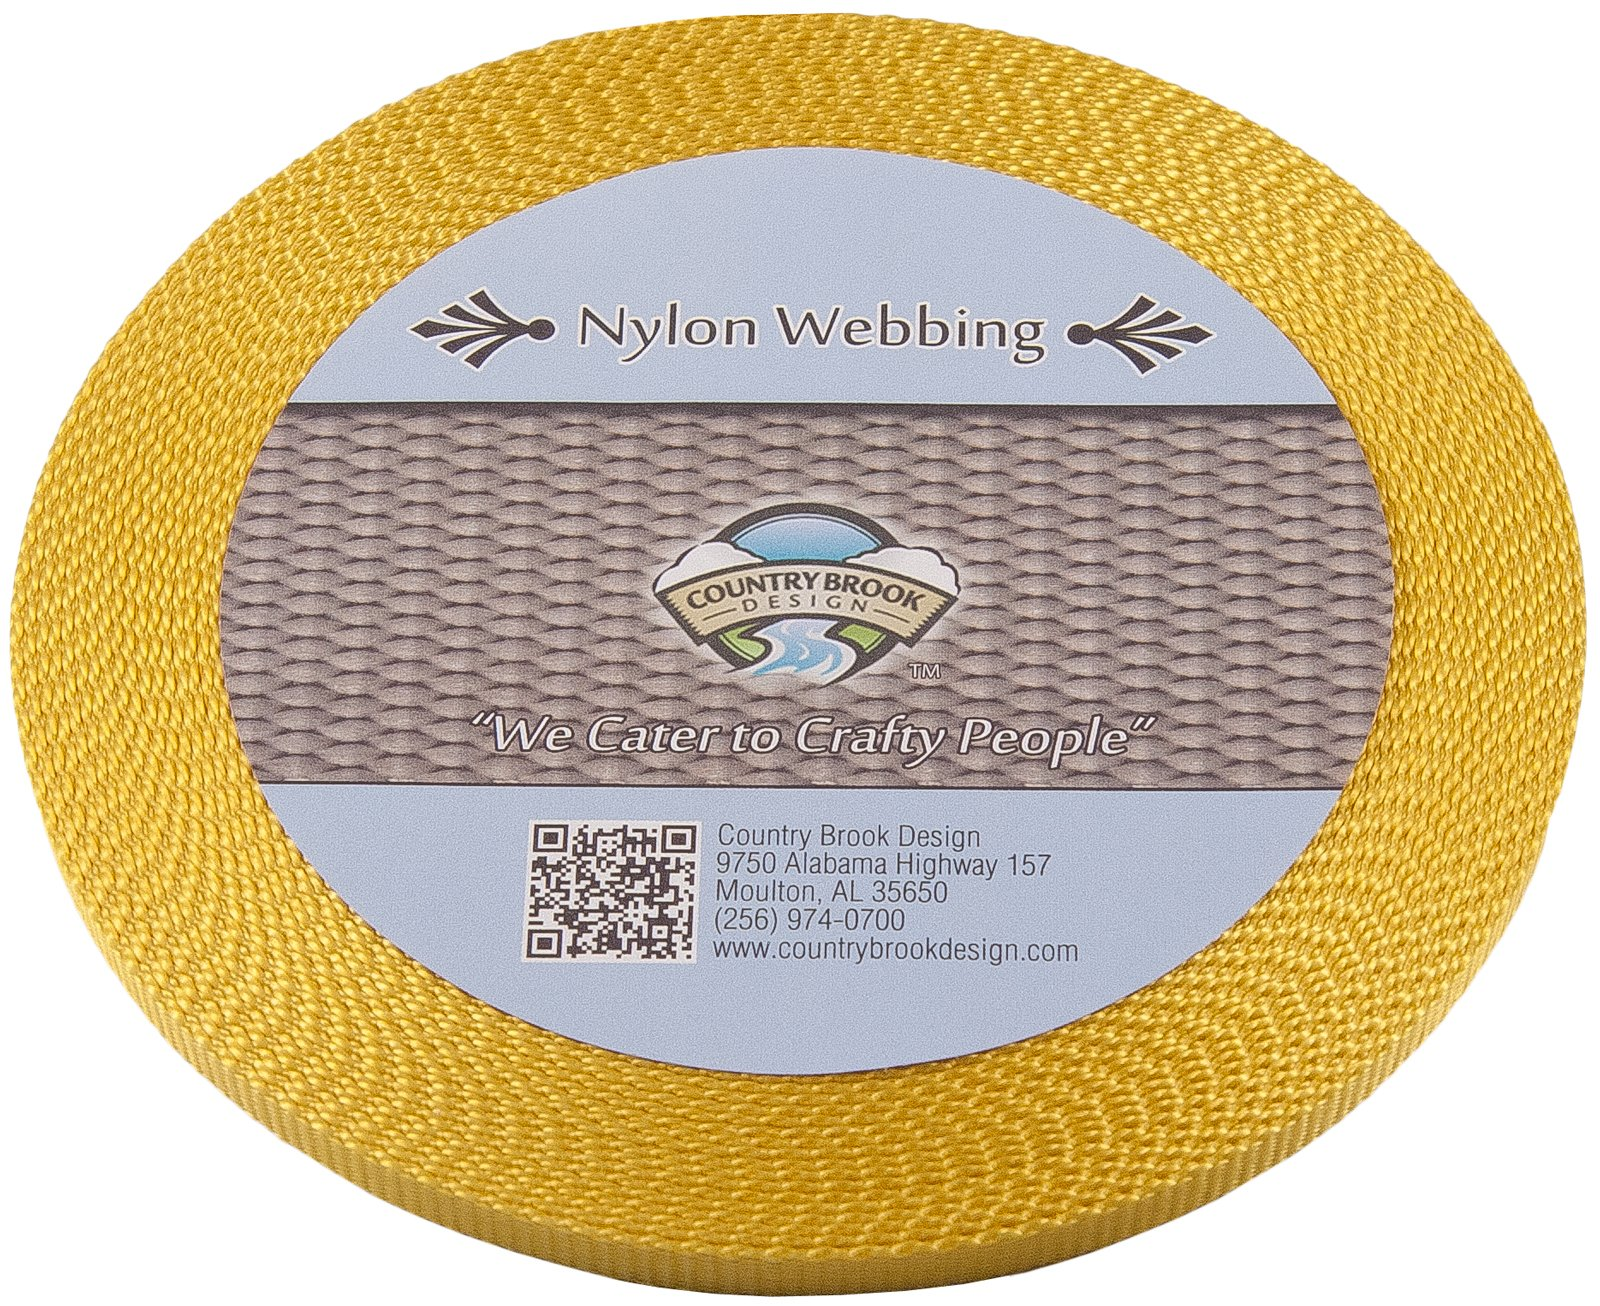 Country Brook Design 3/8 Inch Gold Heavy Nylon Webbing, 10 Yards